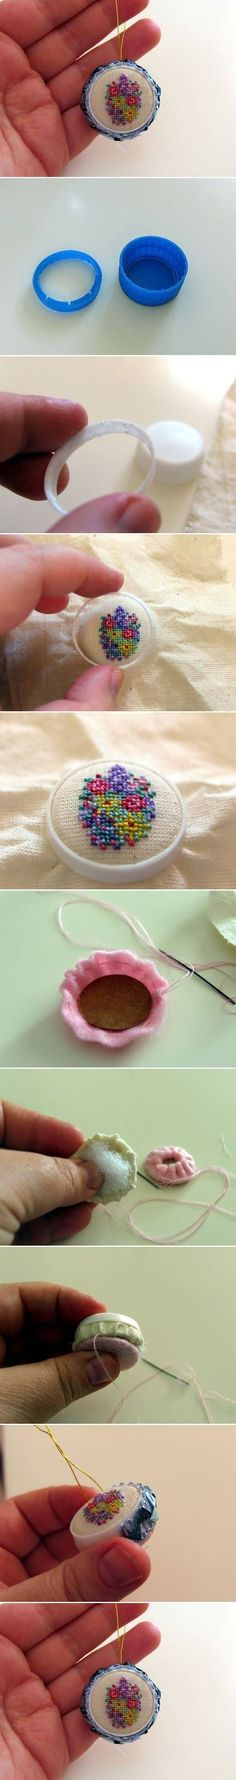 DIY Bottle Cap Ornament DIY Bottle Cap Ornament. Can be used as a miniature wall hanging minus the cap part of bottle